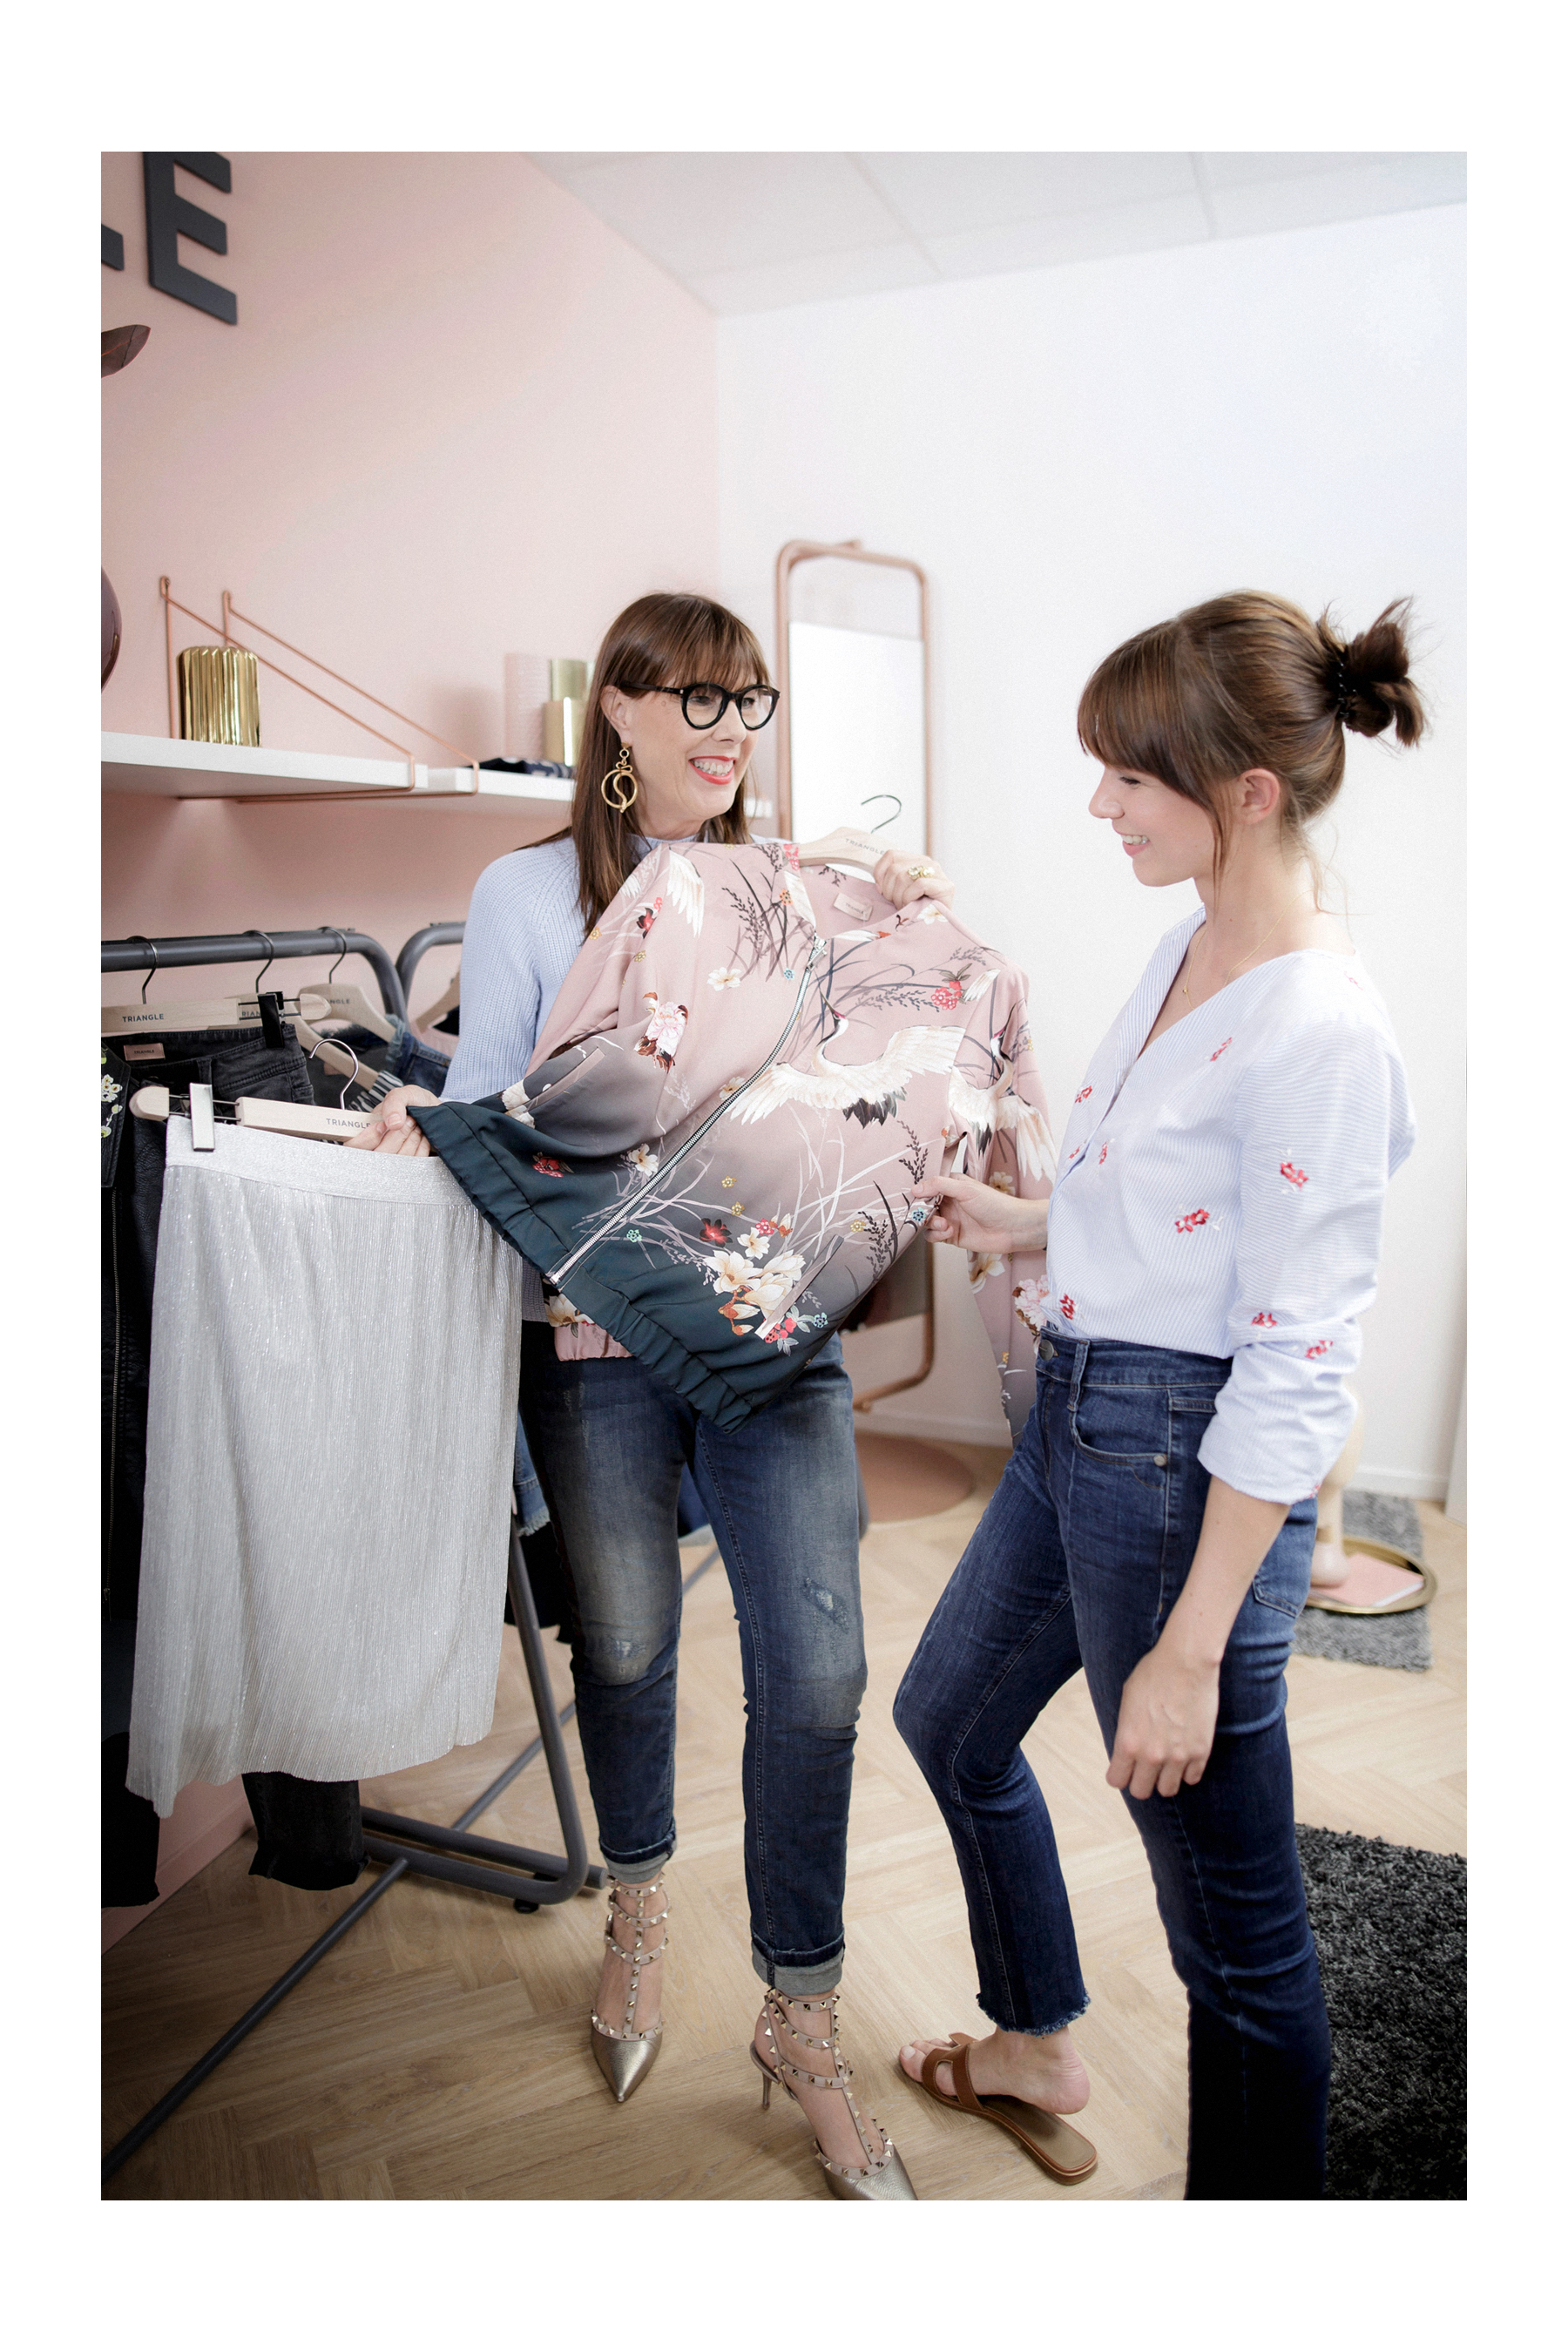 triangle interview business for fashion girls talk fashionblogger rosegold grey minimal scandi style interior brunette bangs cute denim style baby blue cats & dogs modeblog  düsseldorf germany styleblogger outfitblogger ricarda schernus max bechmann 4